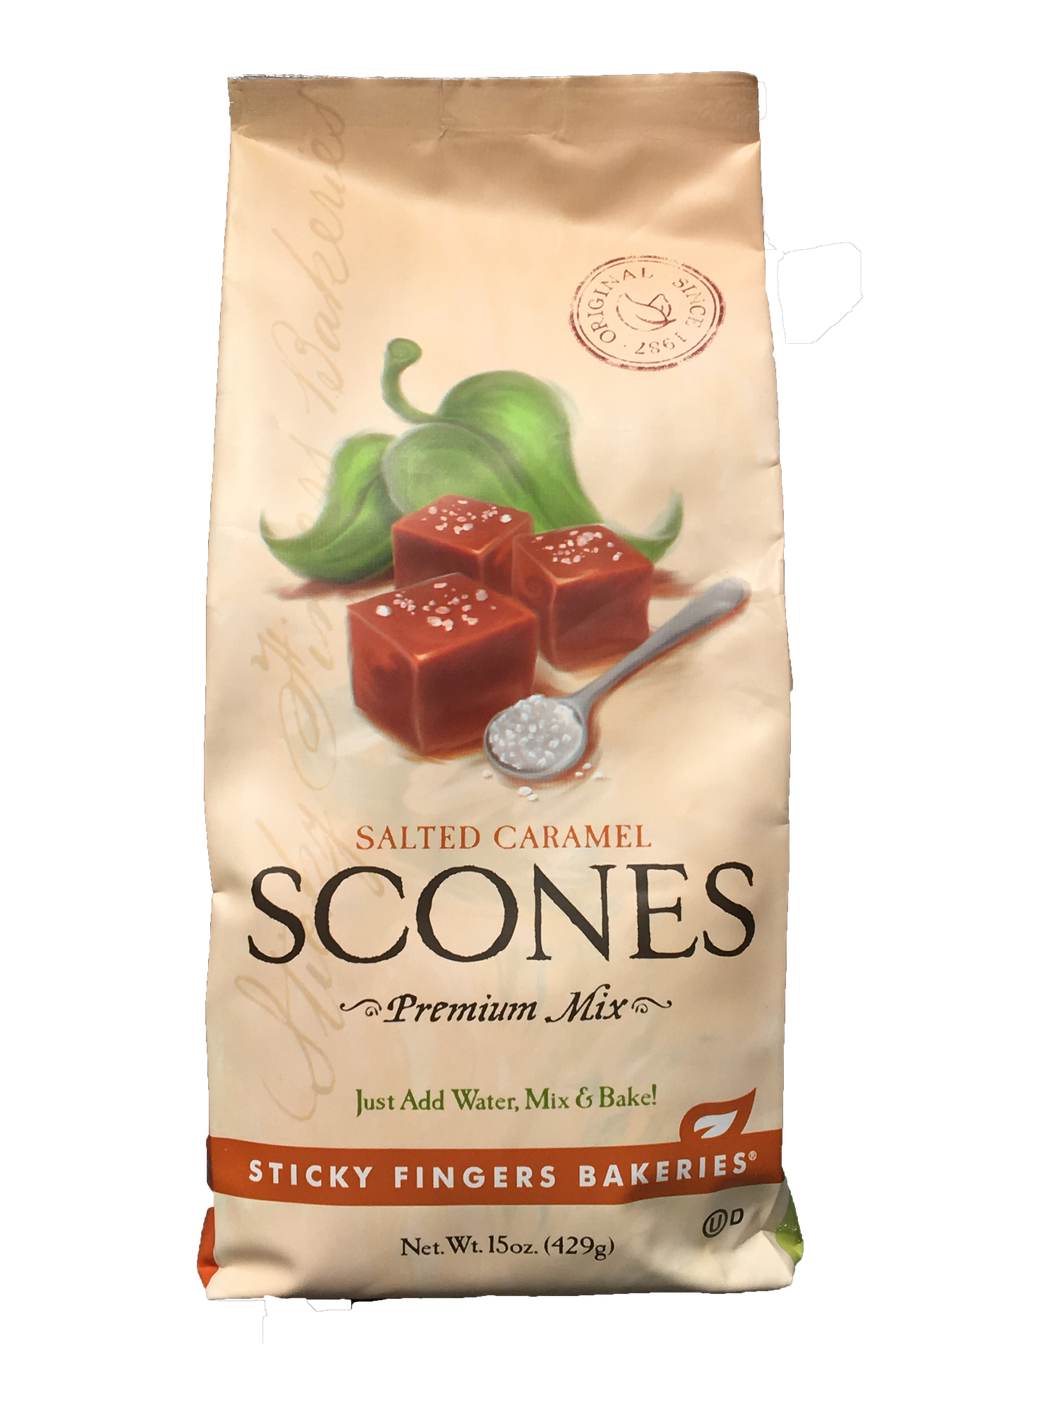 Salted Caramel Scones Mix